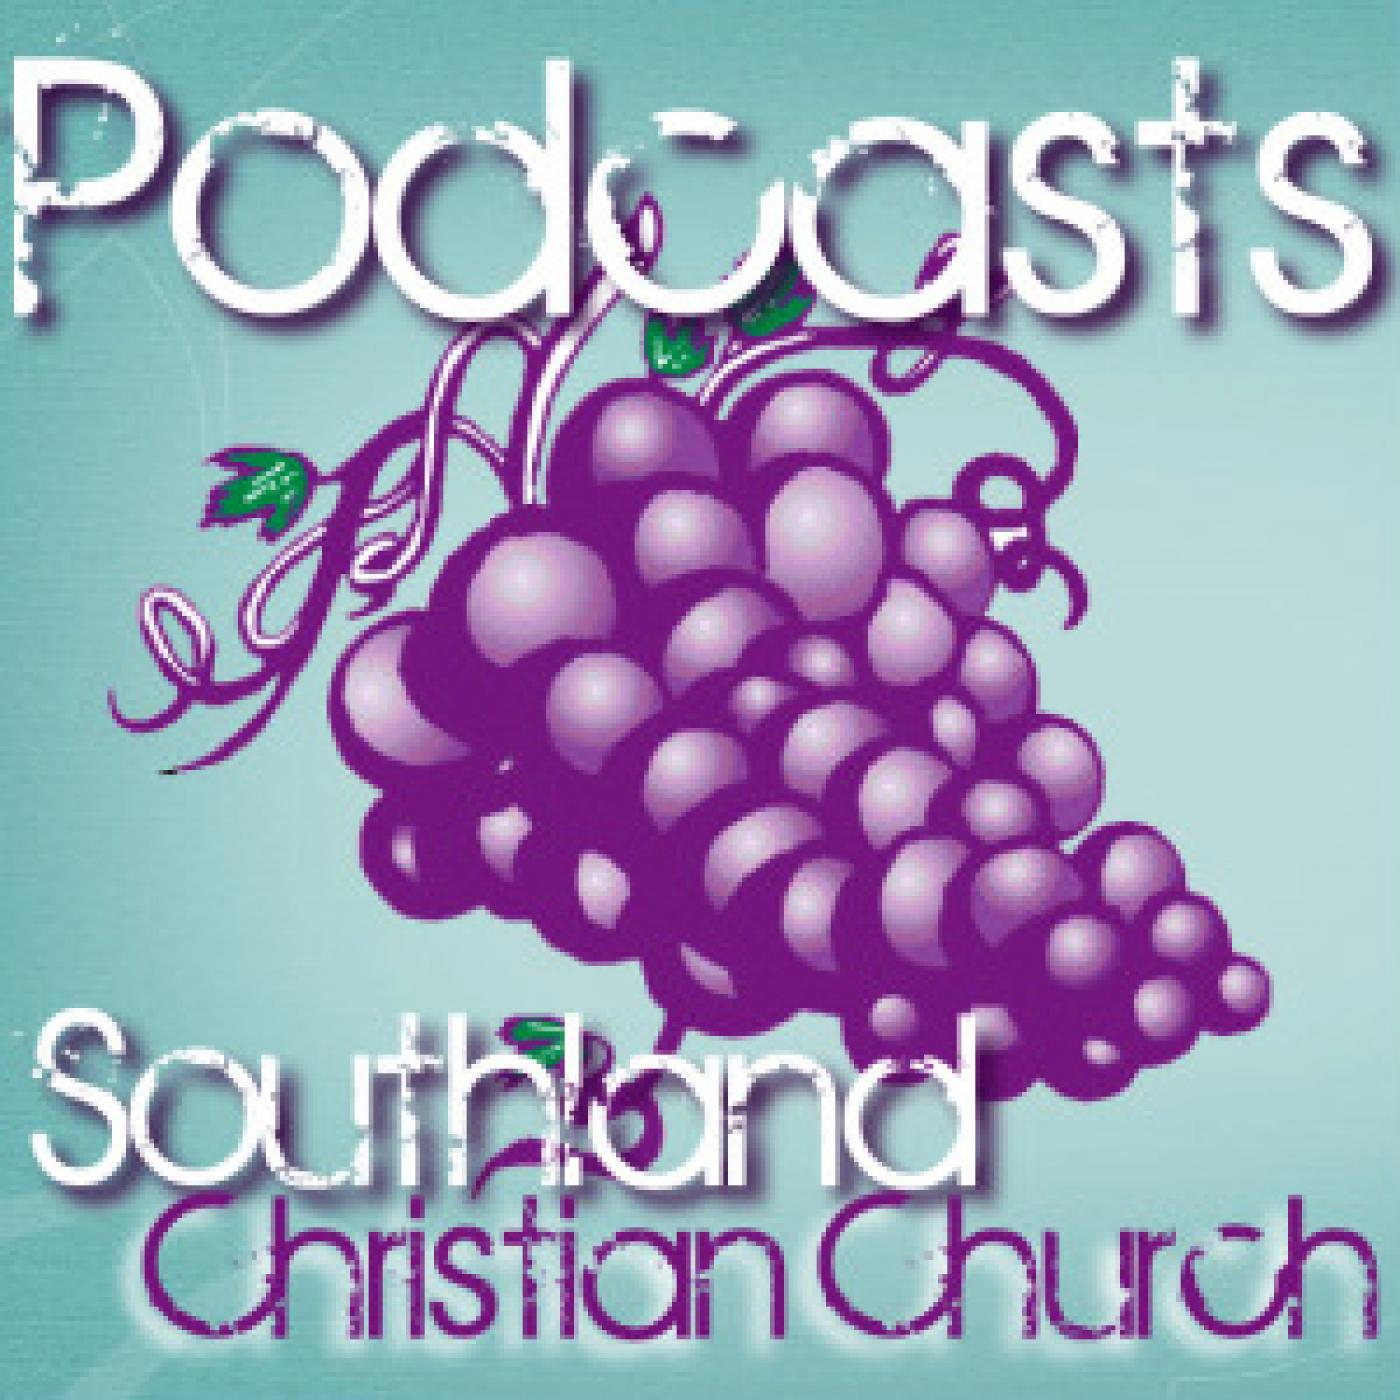 Southland Christian Church Sermons